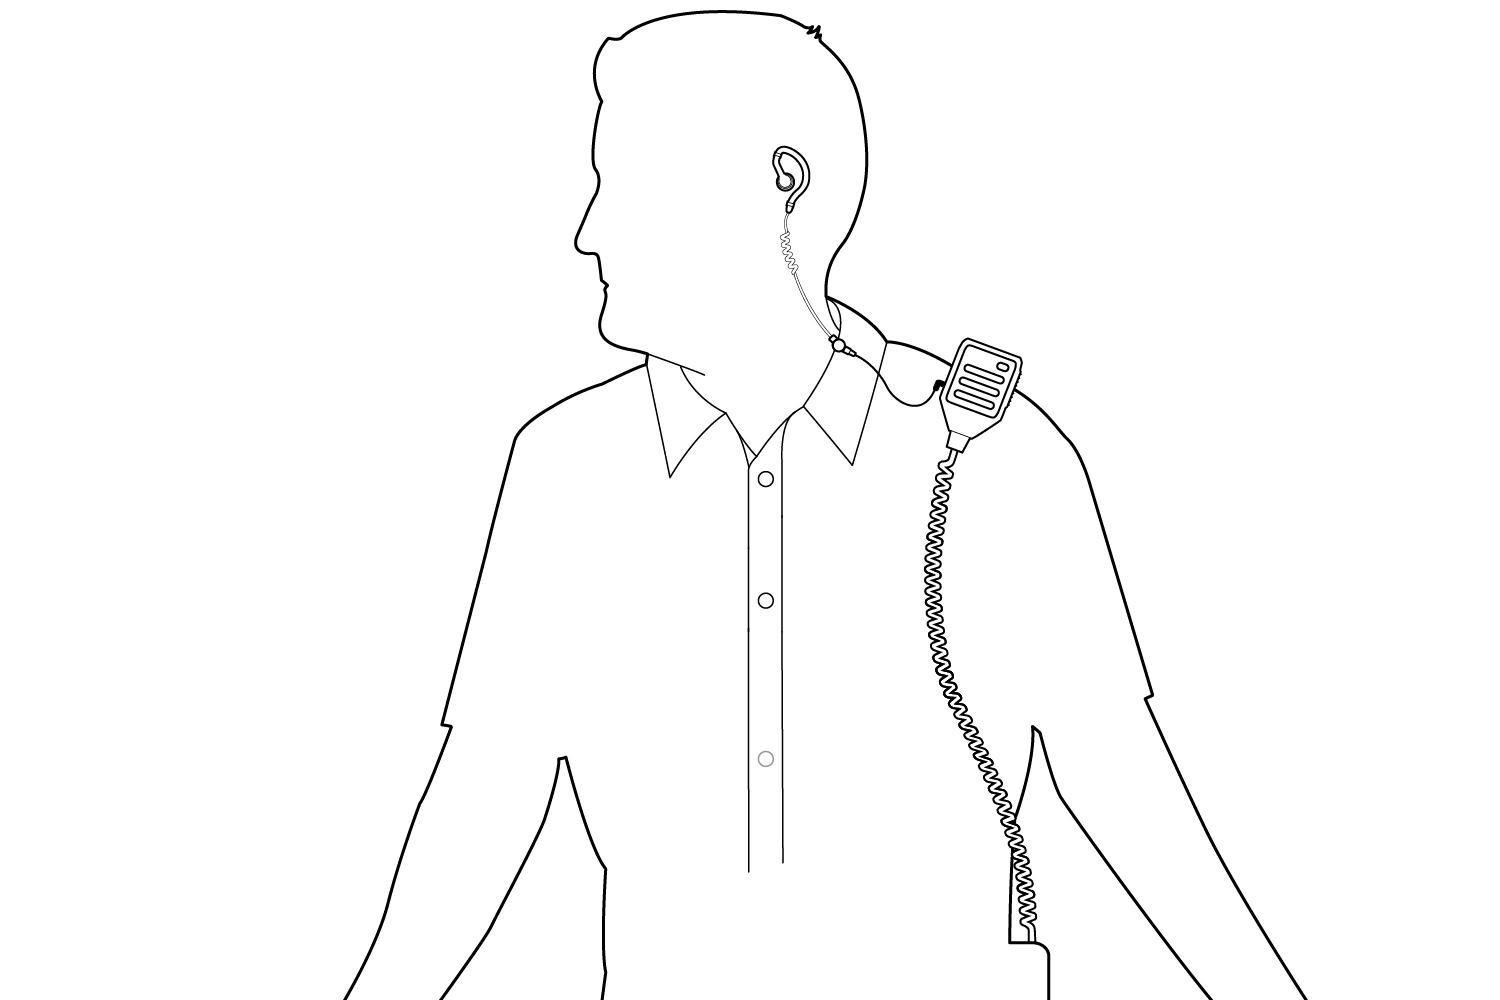 Wearing With RSM Diagram